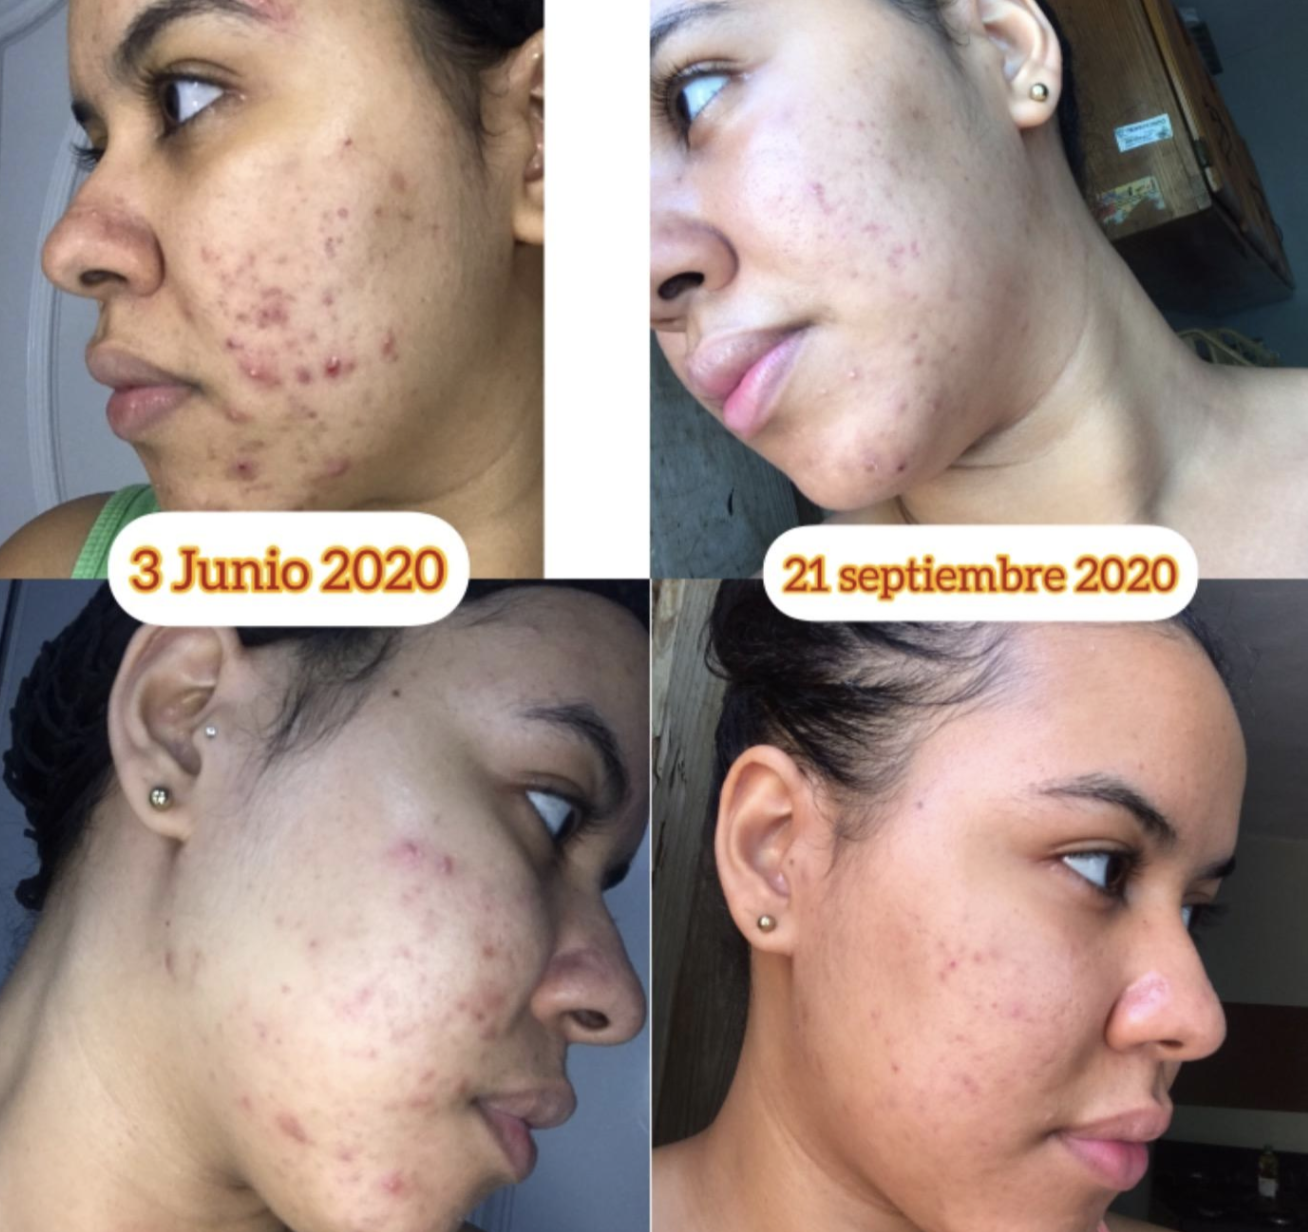 on the left, a reviewer showing the acne on their face in June 2020, and on the right, the same reviewer showing their acne has started to clear up in September 2020